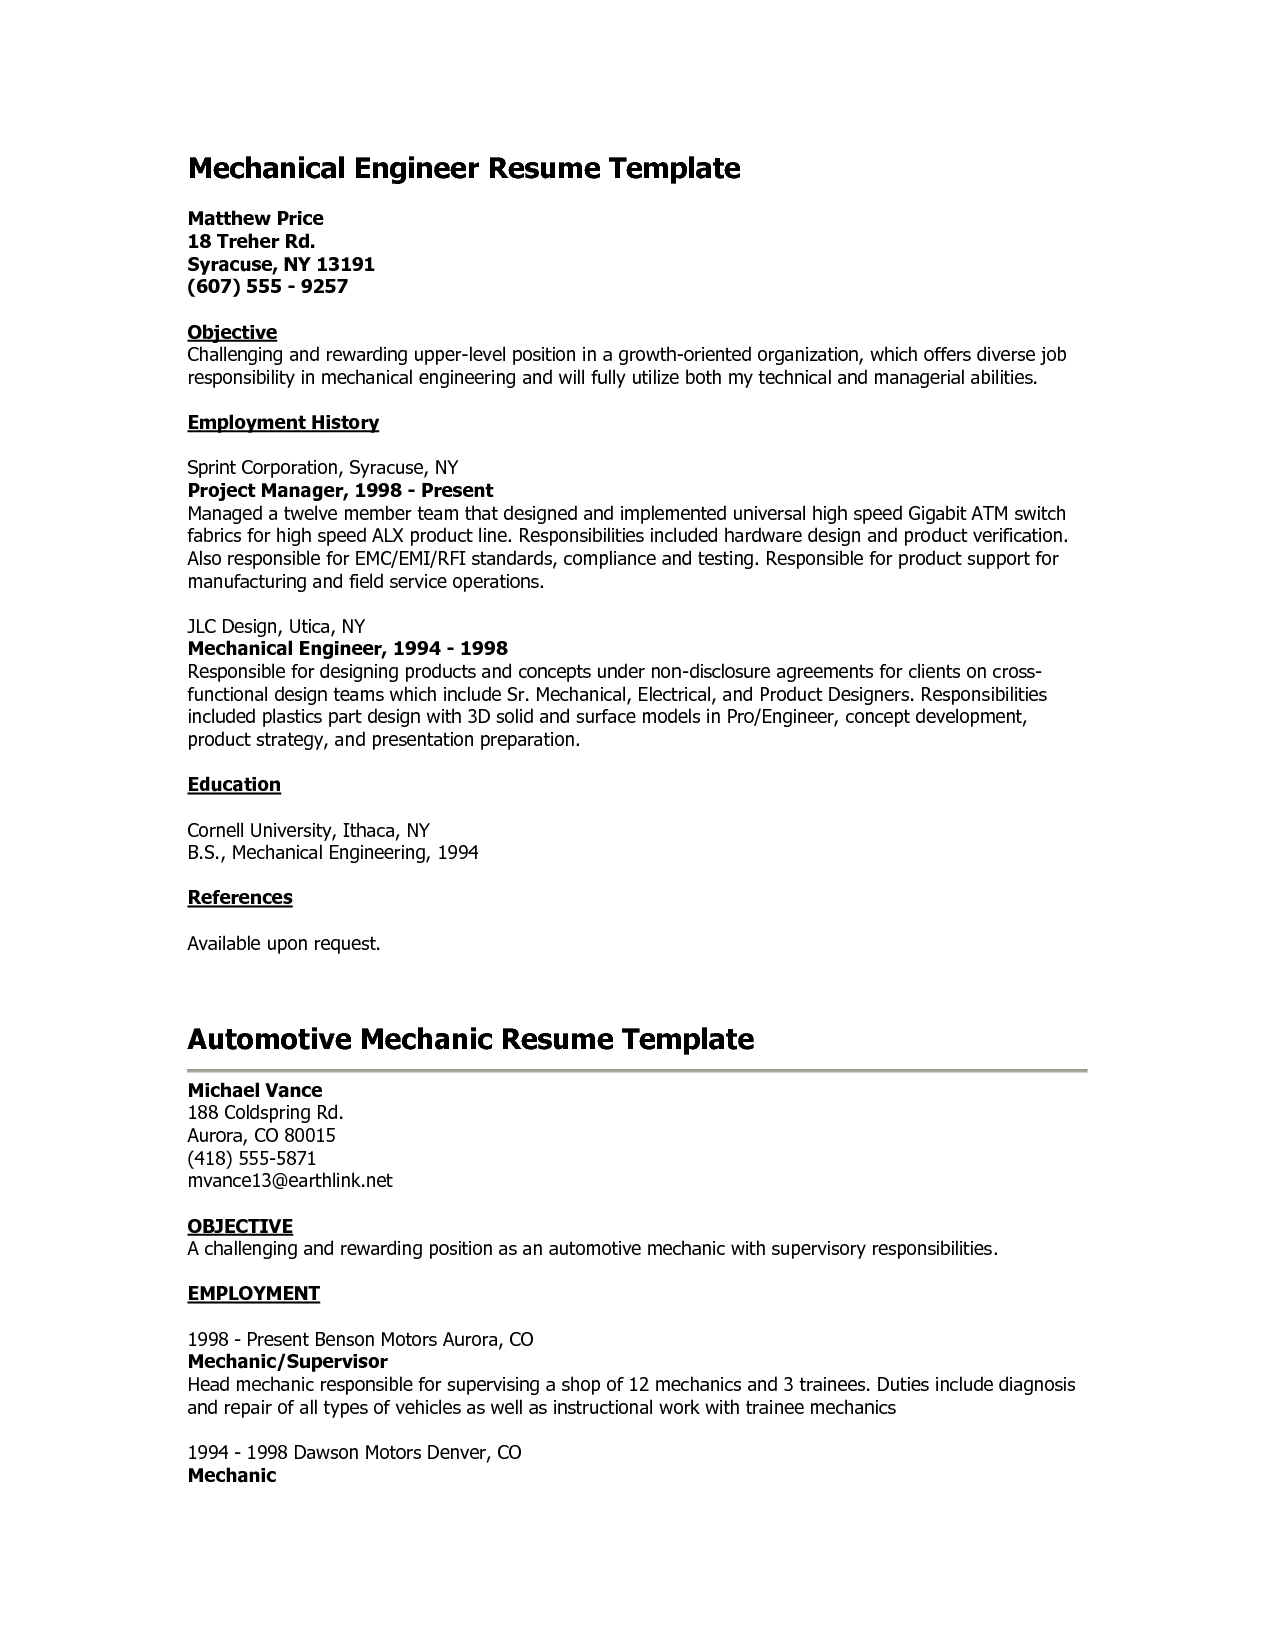 How to write of bank teller resume sample for Sample resume for a bank teller with no experience